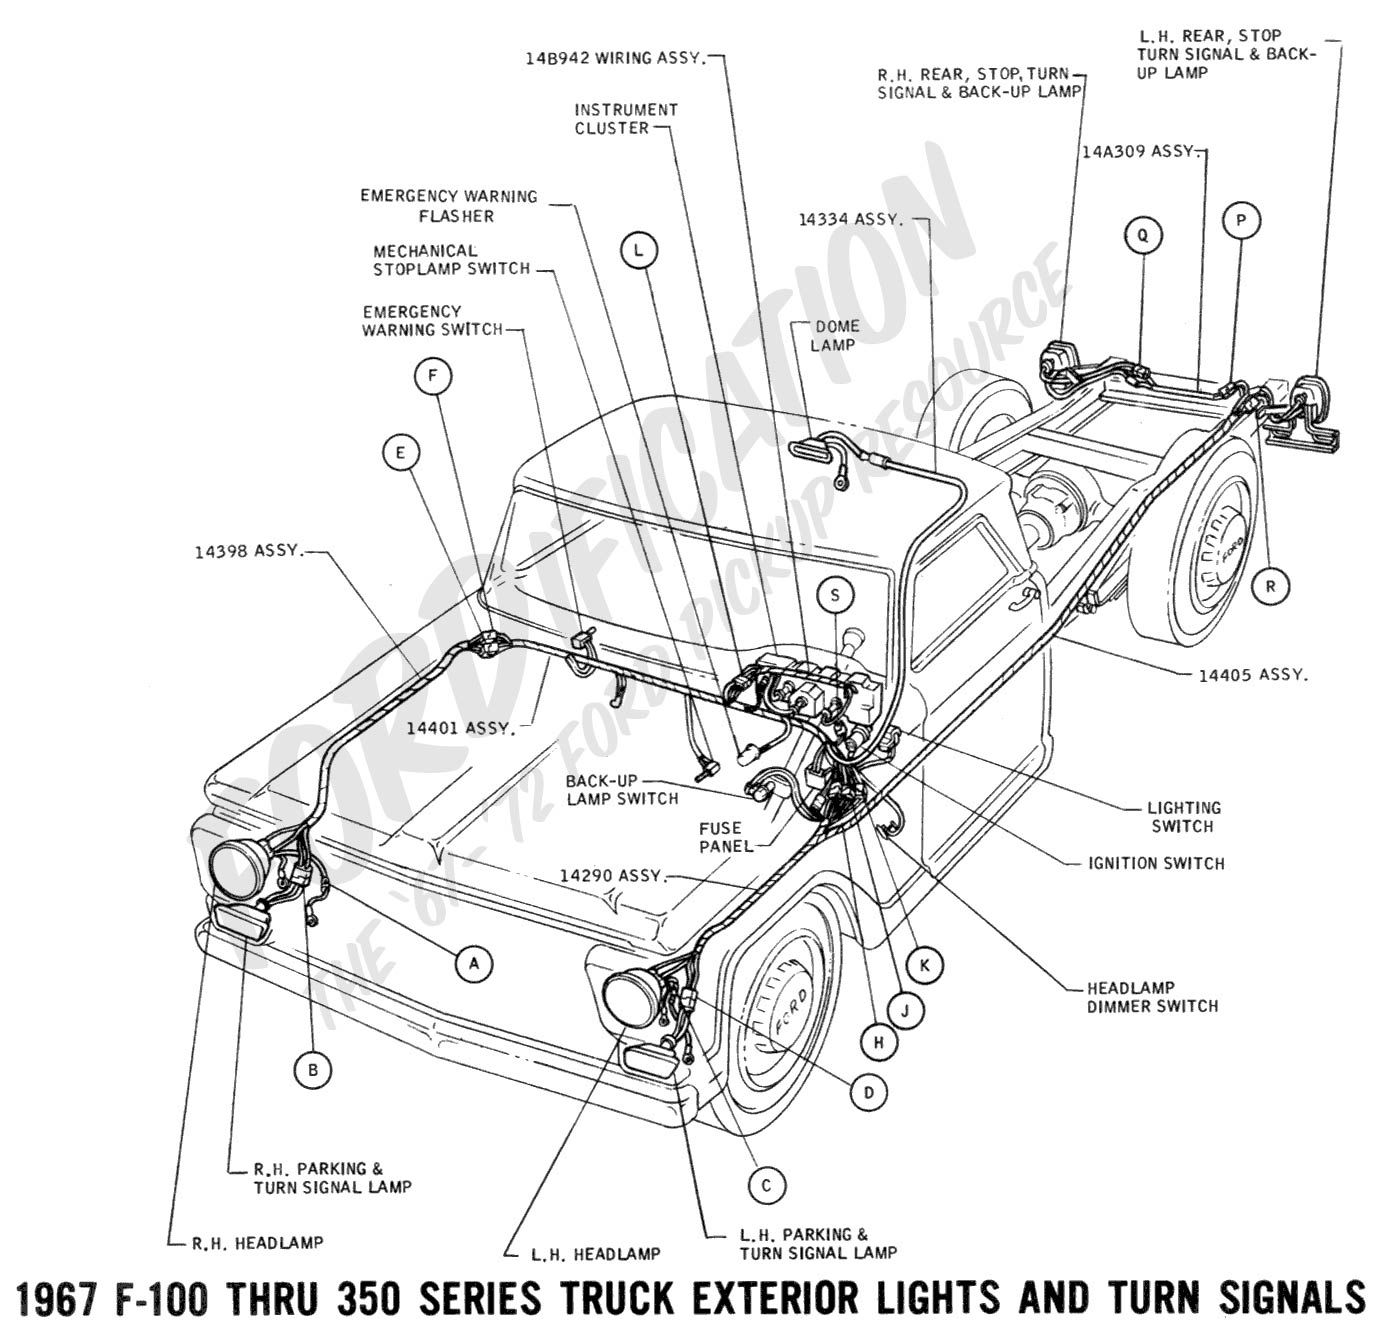 Ford Backup Lights Wiring Diagram 2010 F150. Ford. Auto